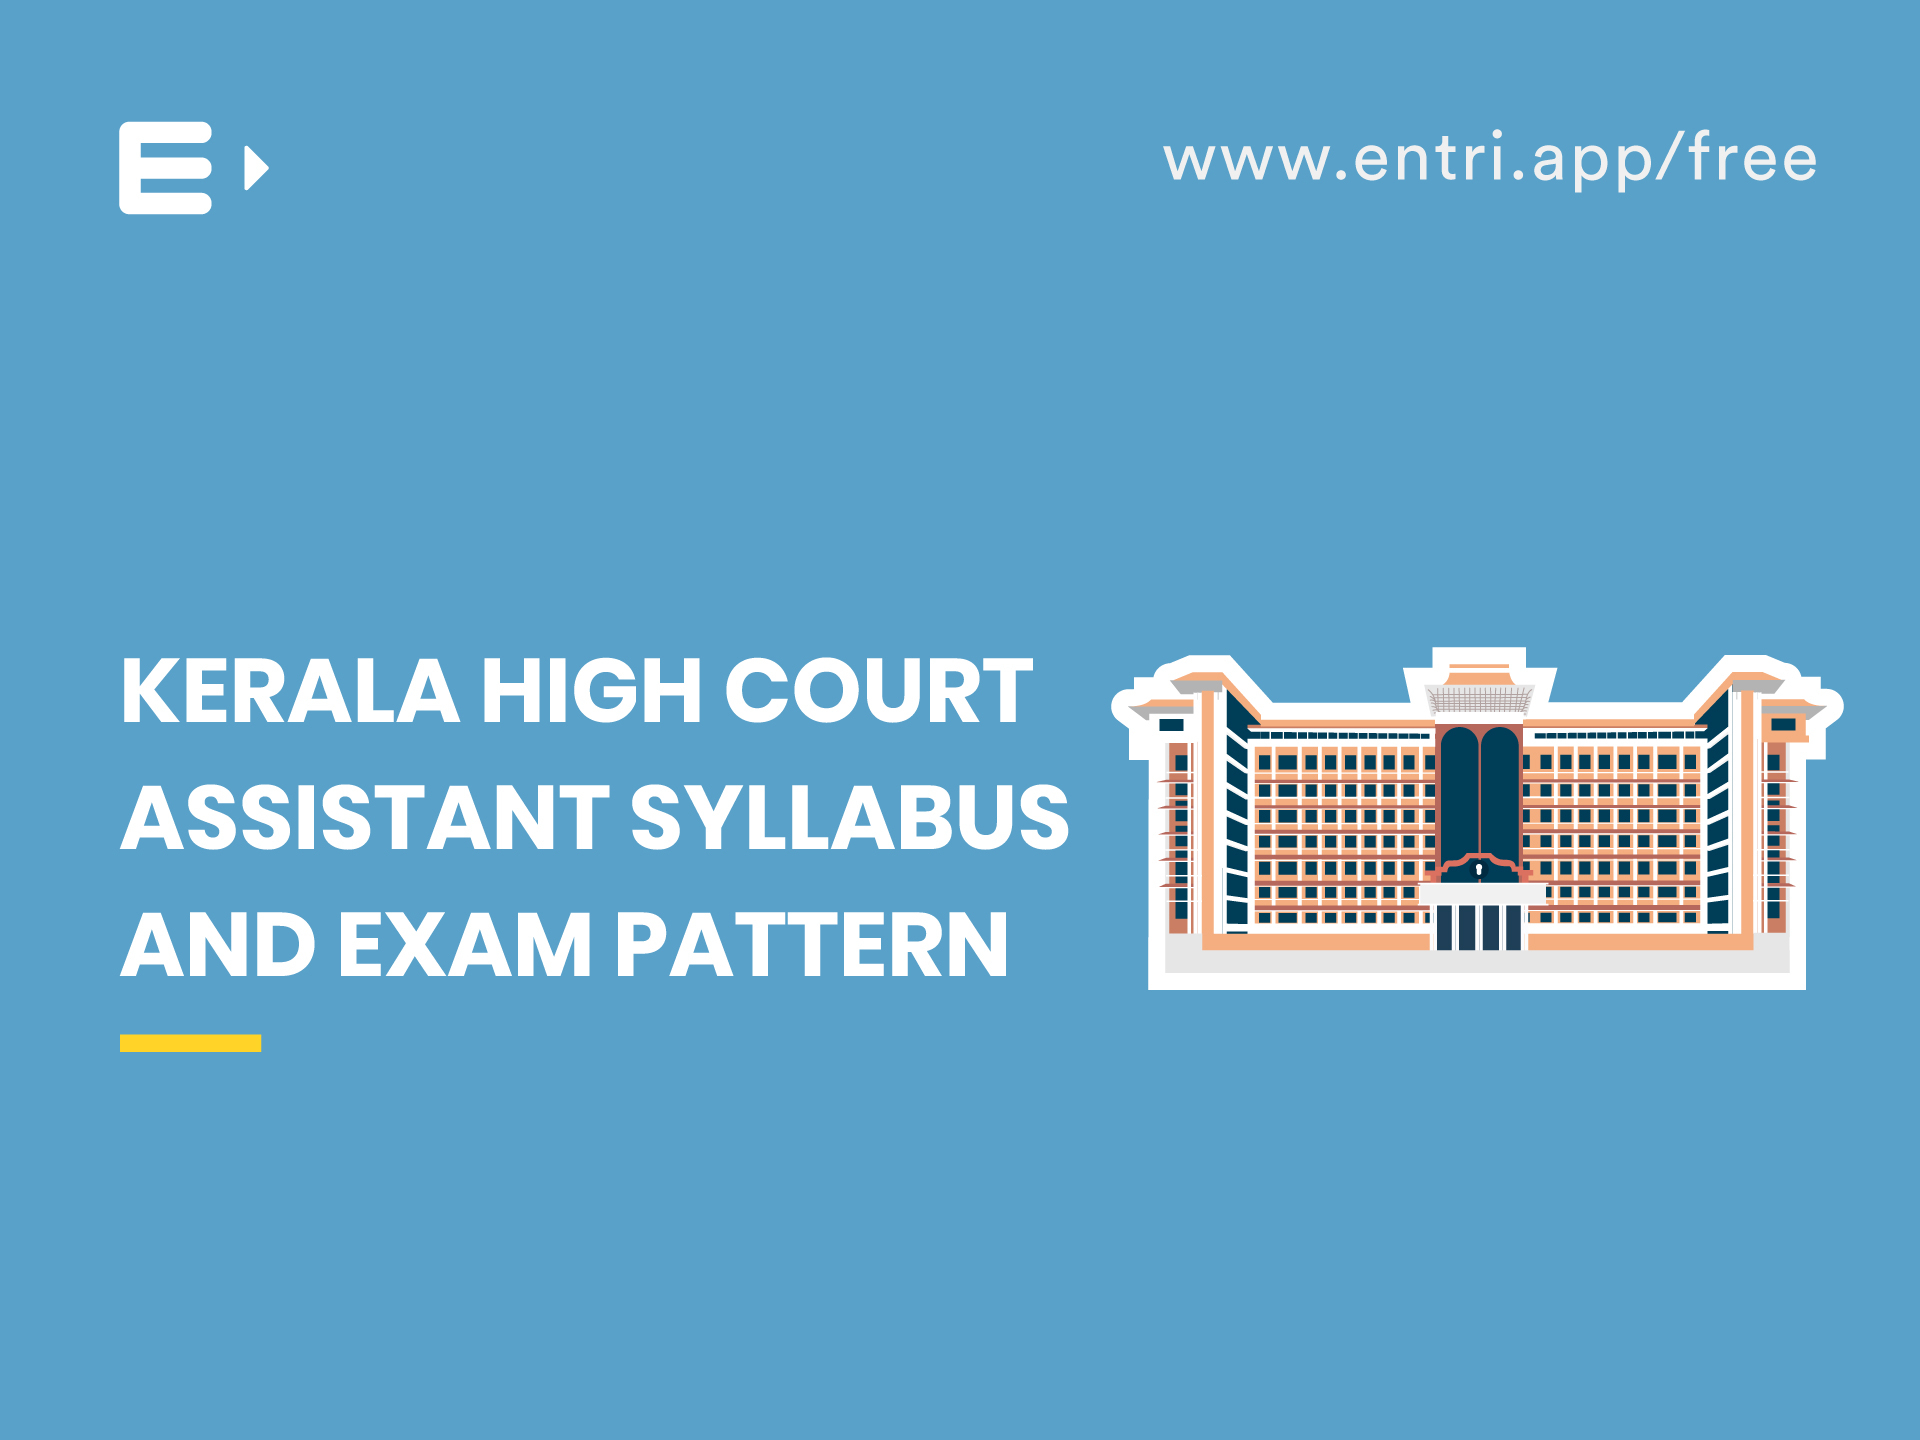 Kerala High Court Assistant  Syllabus And Exam Pattern pertaining to Kerala High Court Calendar